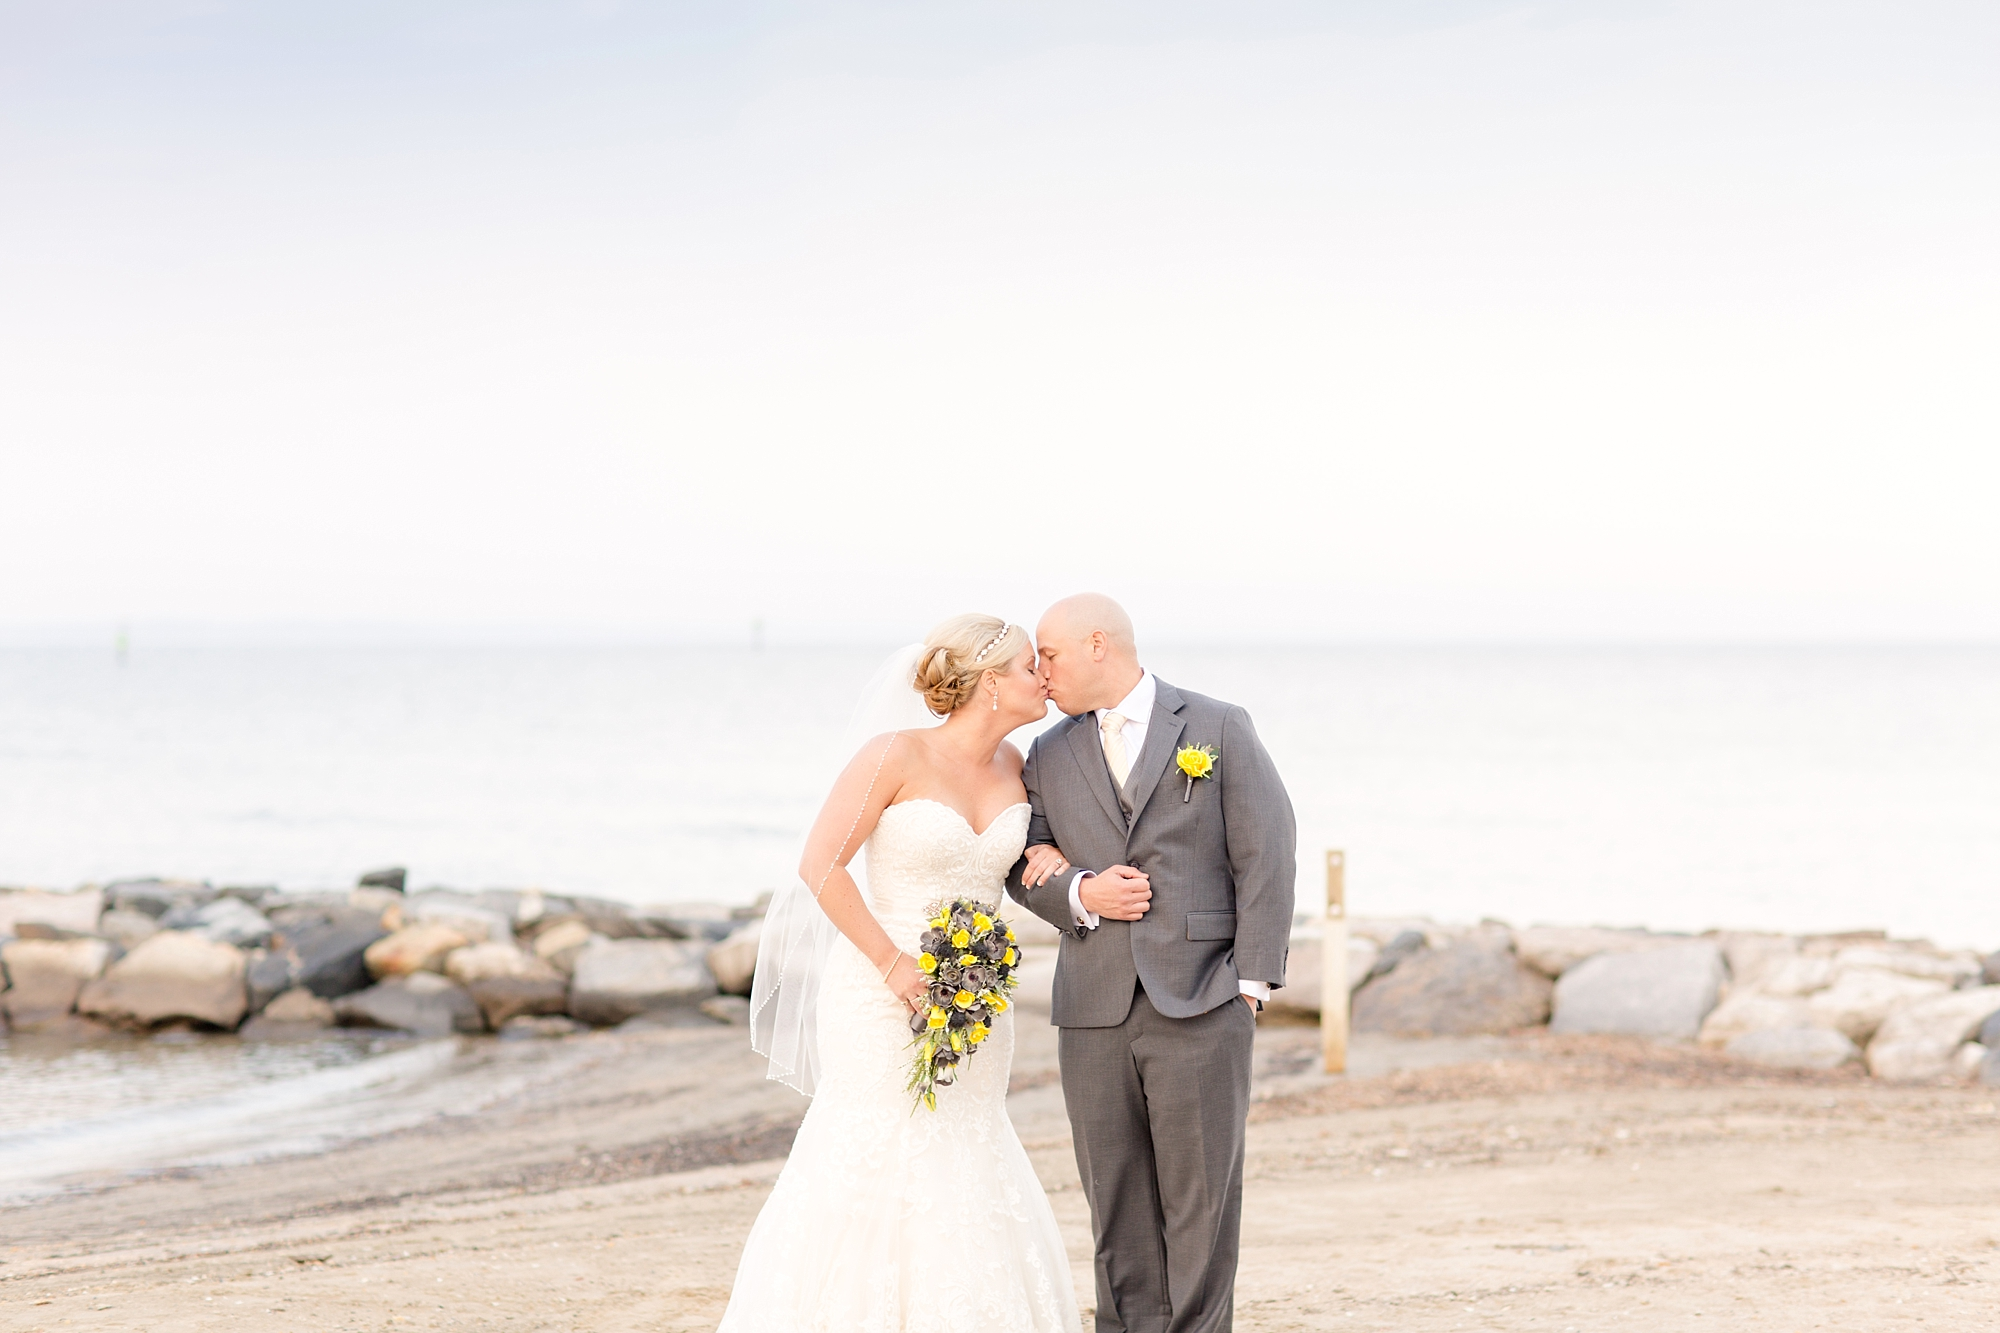 Mankiewicz 3. Bride & Groom Portraits-851_anna grace photography annapolis maryland wedding photographer herrington on the bay wedding photo.jpg